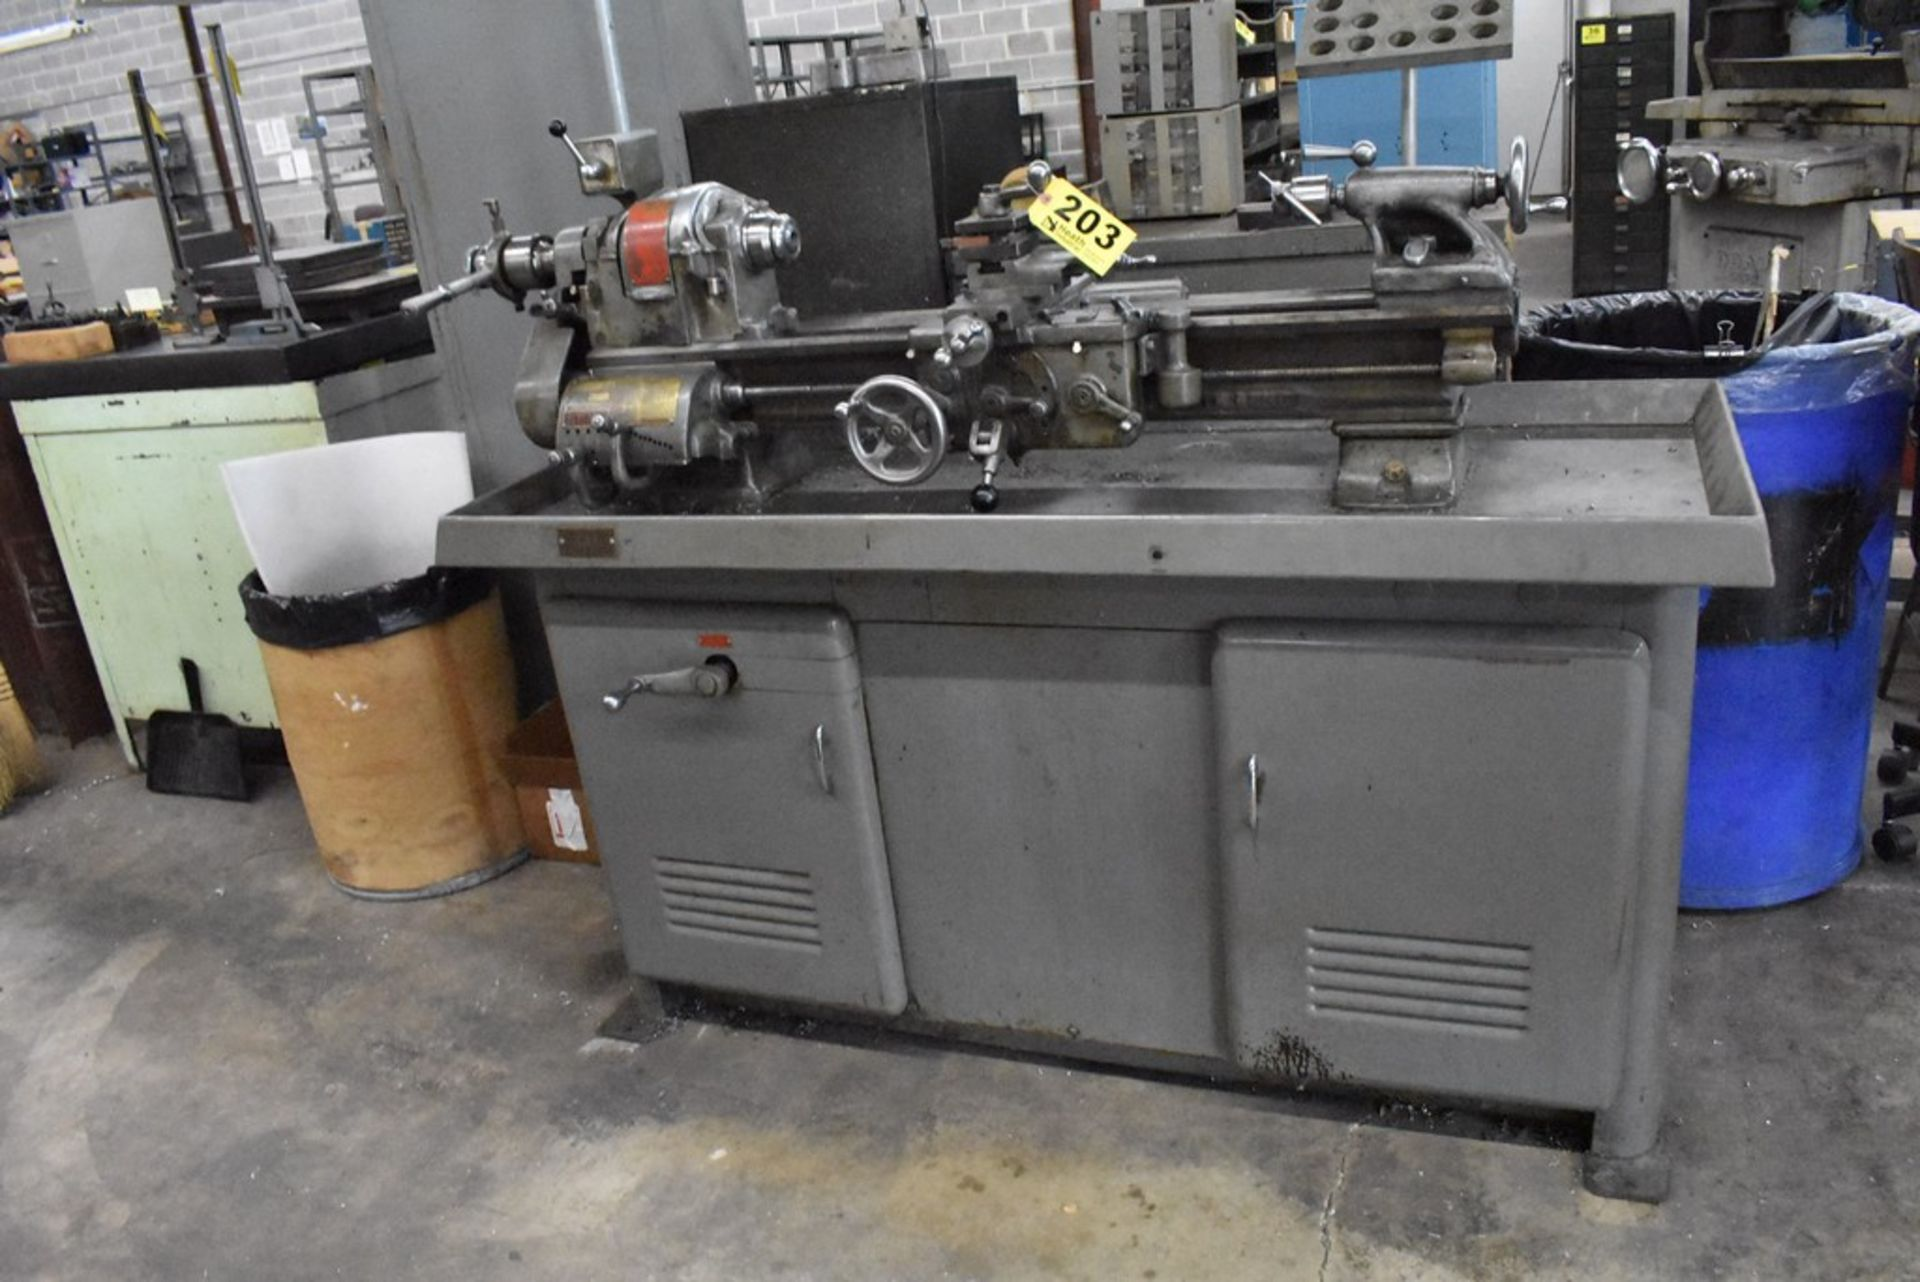 """SOUTH BEND 10""""X30"""" CABINET BASE TOOL ROOM LATHE, S/N 16711RKX12, WITH COLLET CLOSER, 4-WAY TOOL - Image 2 of 13"""